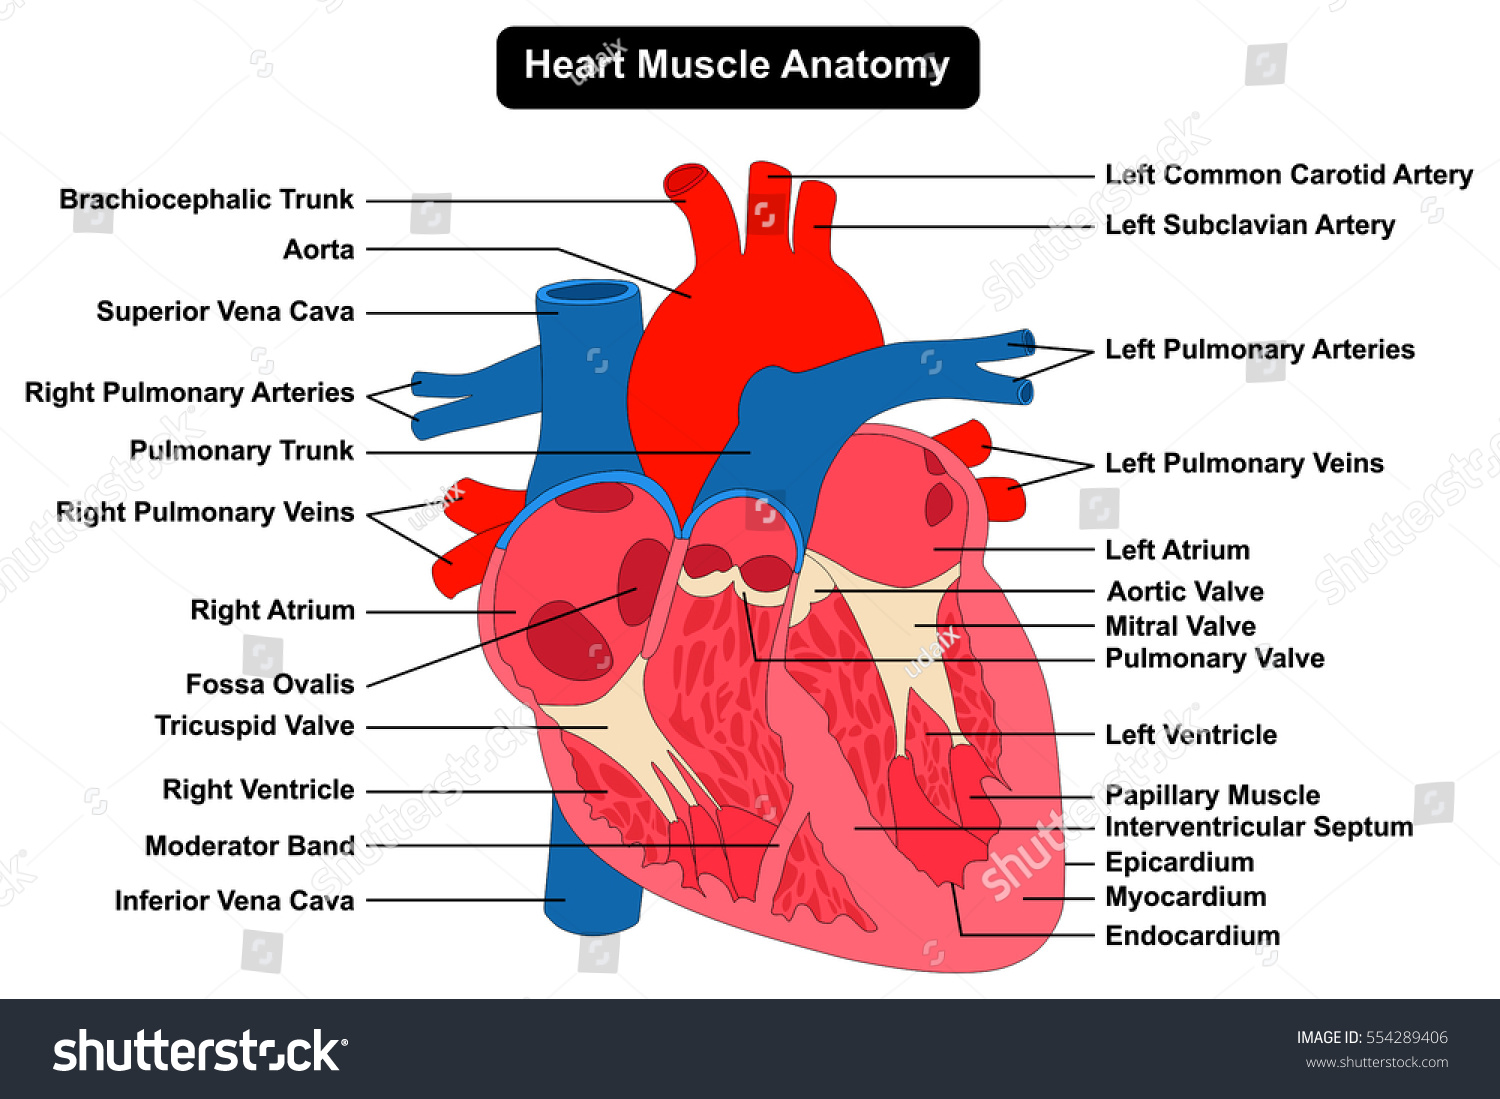 Human Heart Muscle Structure Anatomy Infographic Stock Vector